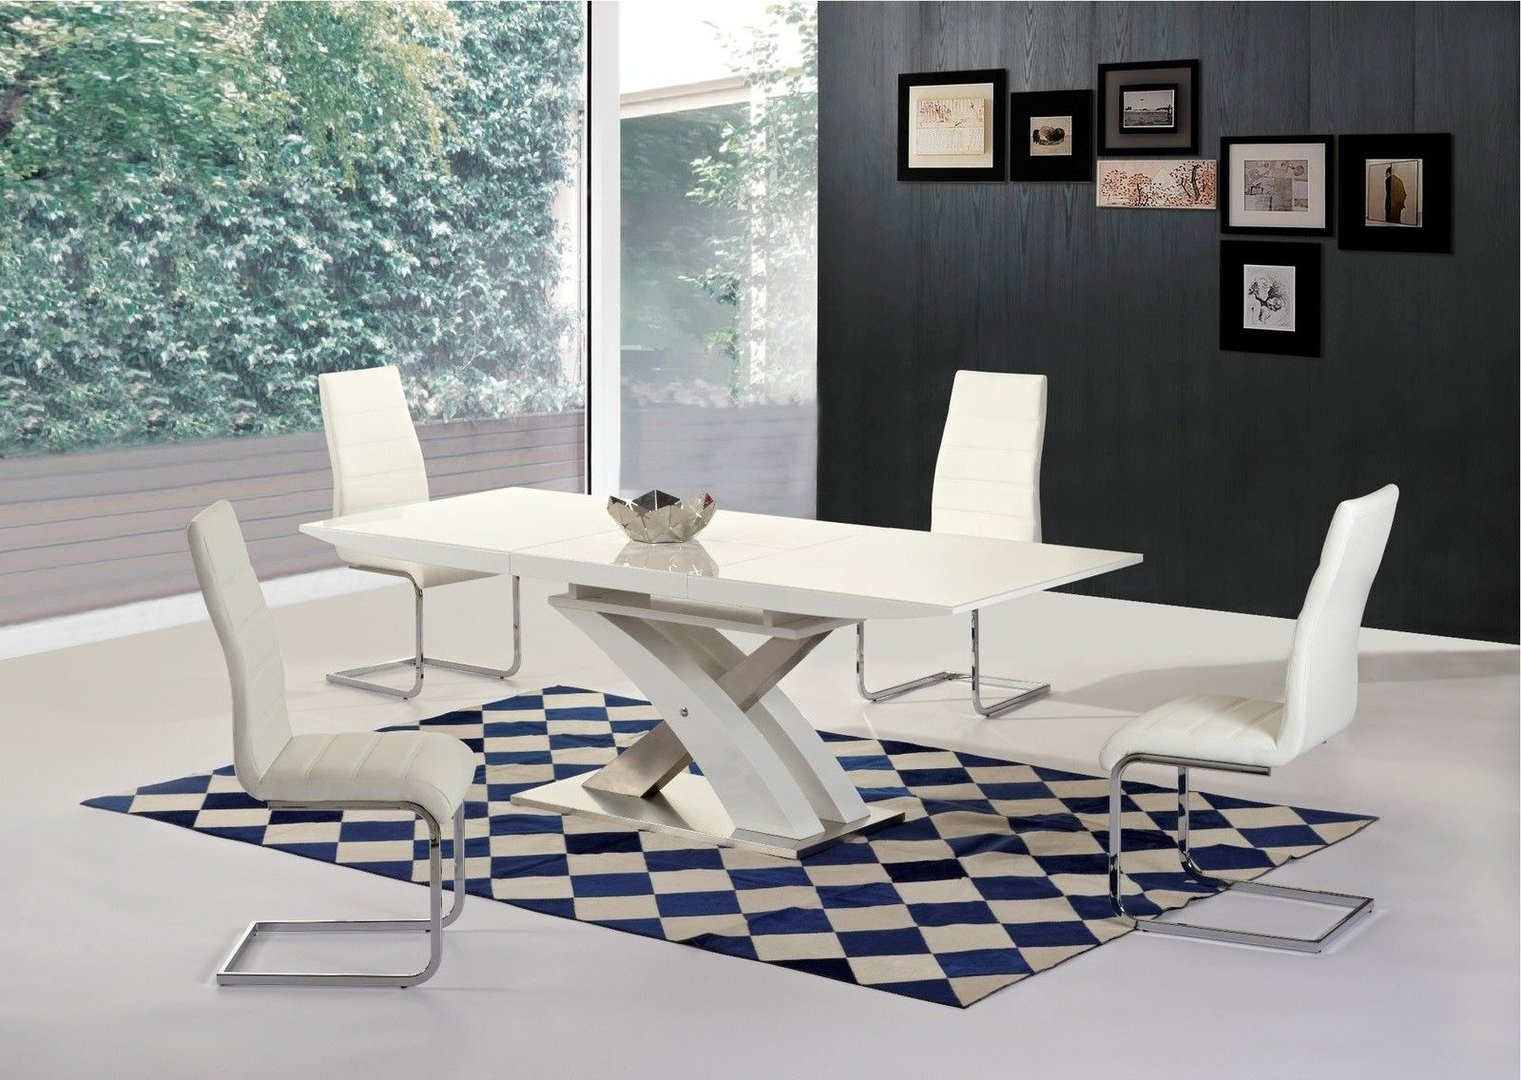 2018 Extendable Dining Tables 6 Chairs In White High Gloss / Glass Extending Dining Table & 6 Chairs (View 5 of 25)